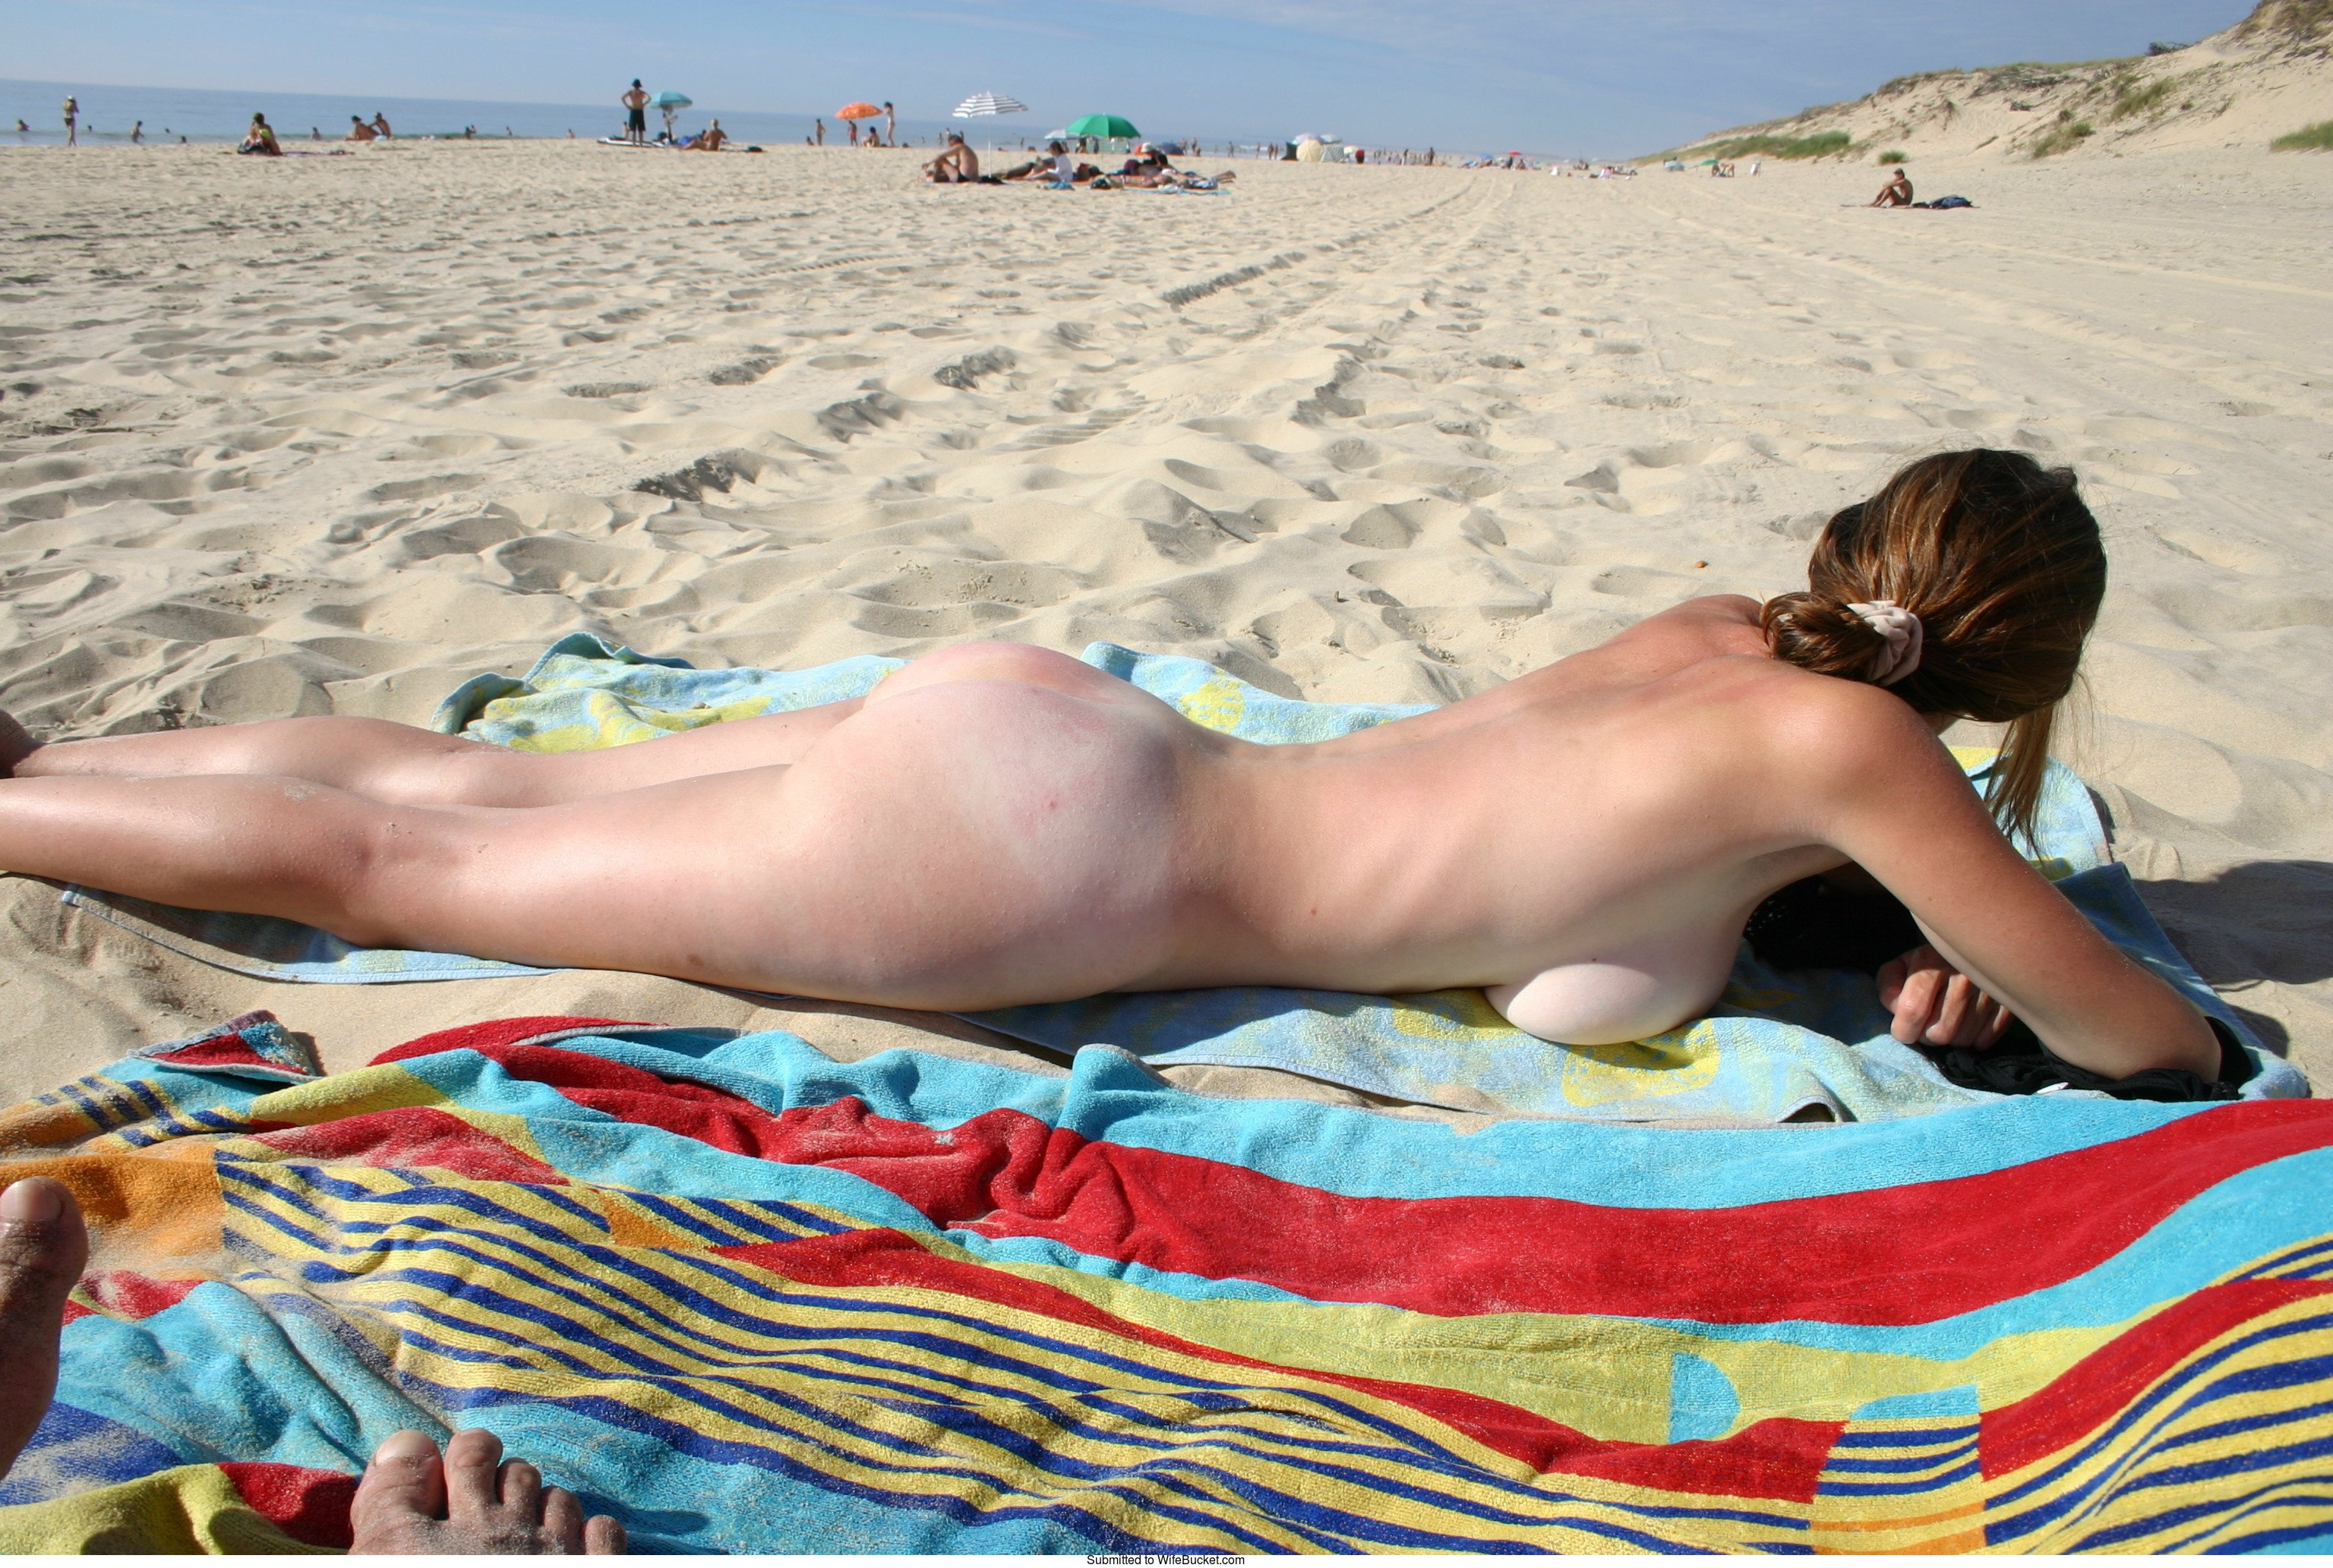 Milf nude beach share